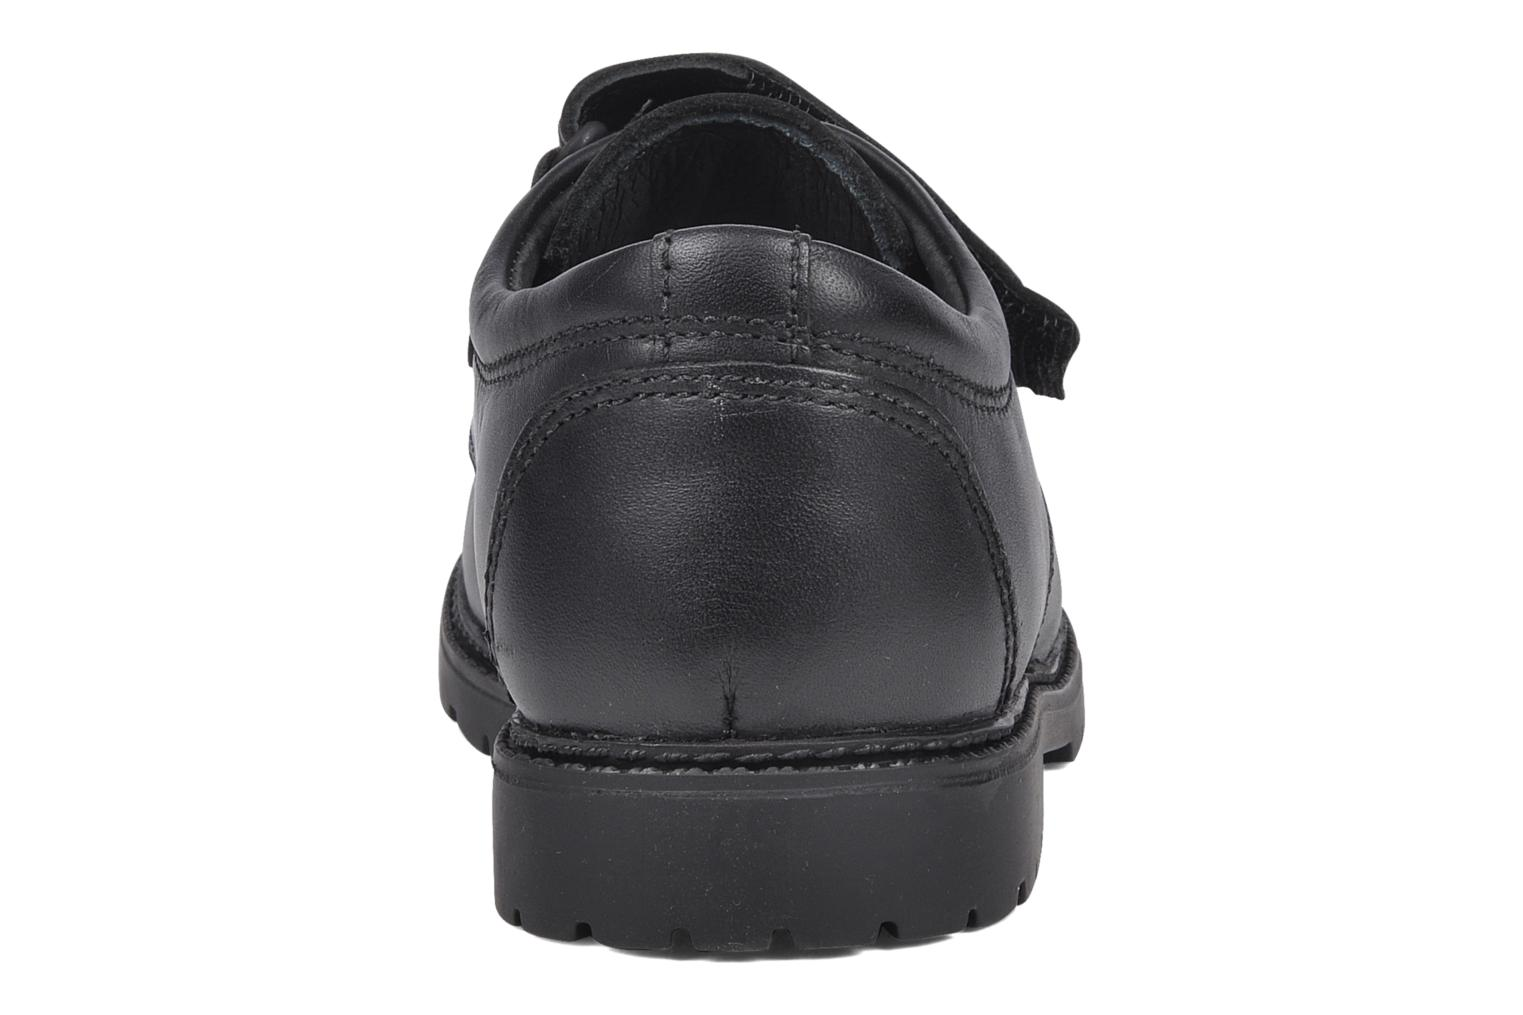 Will Black leather